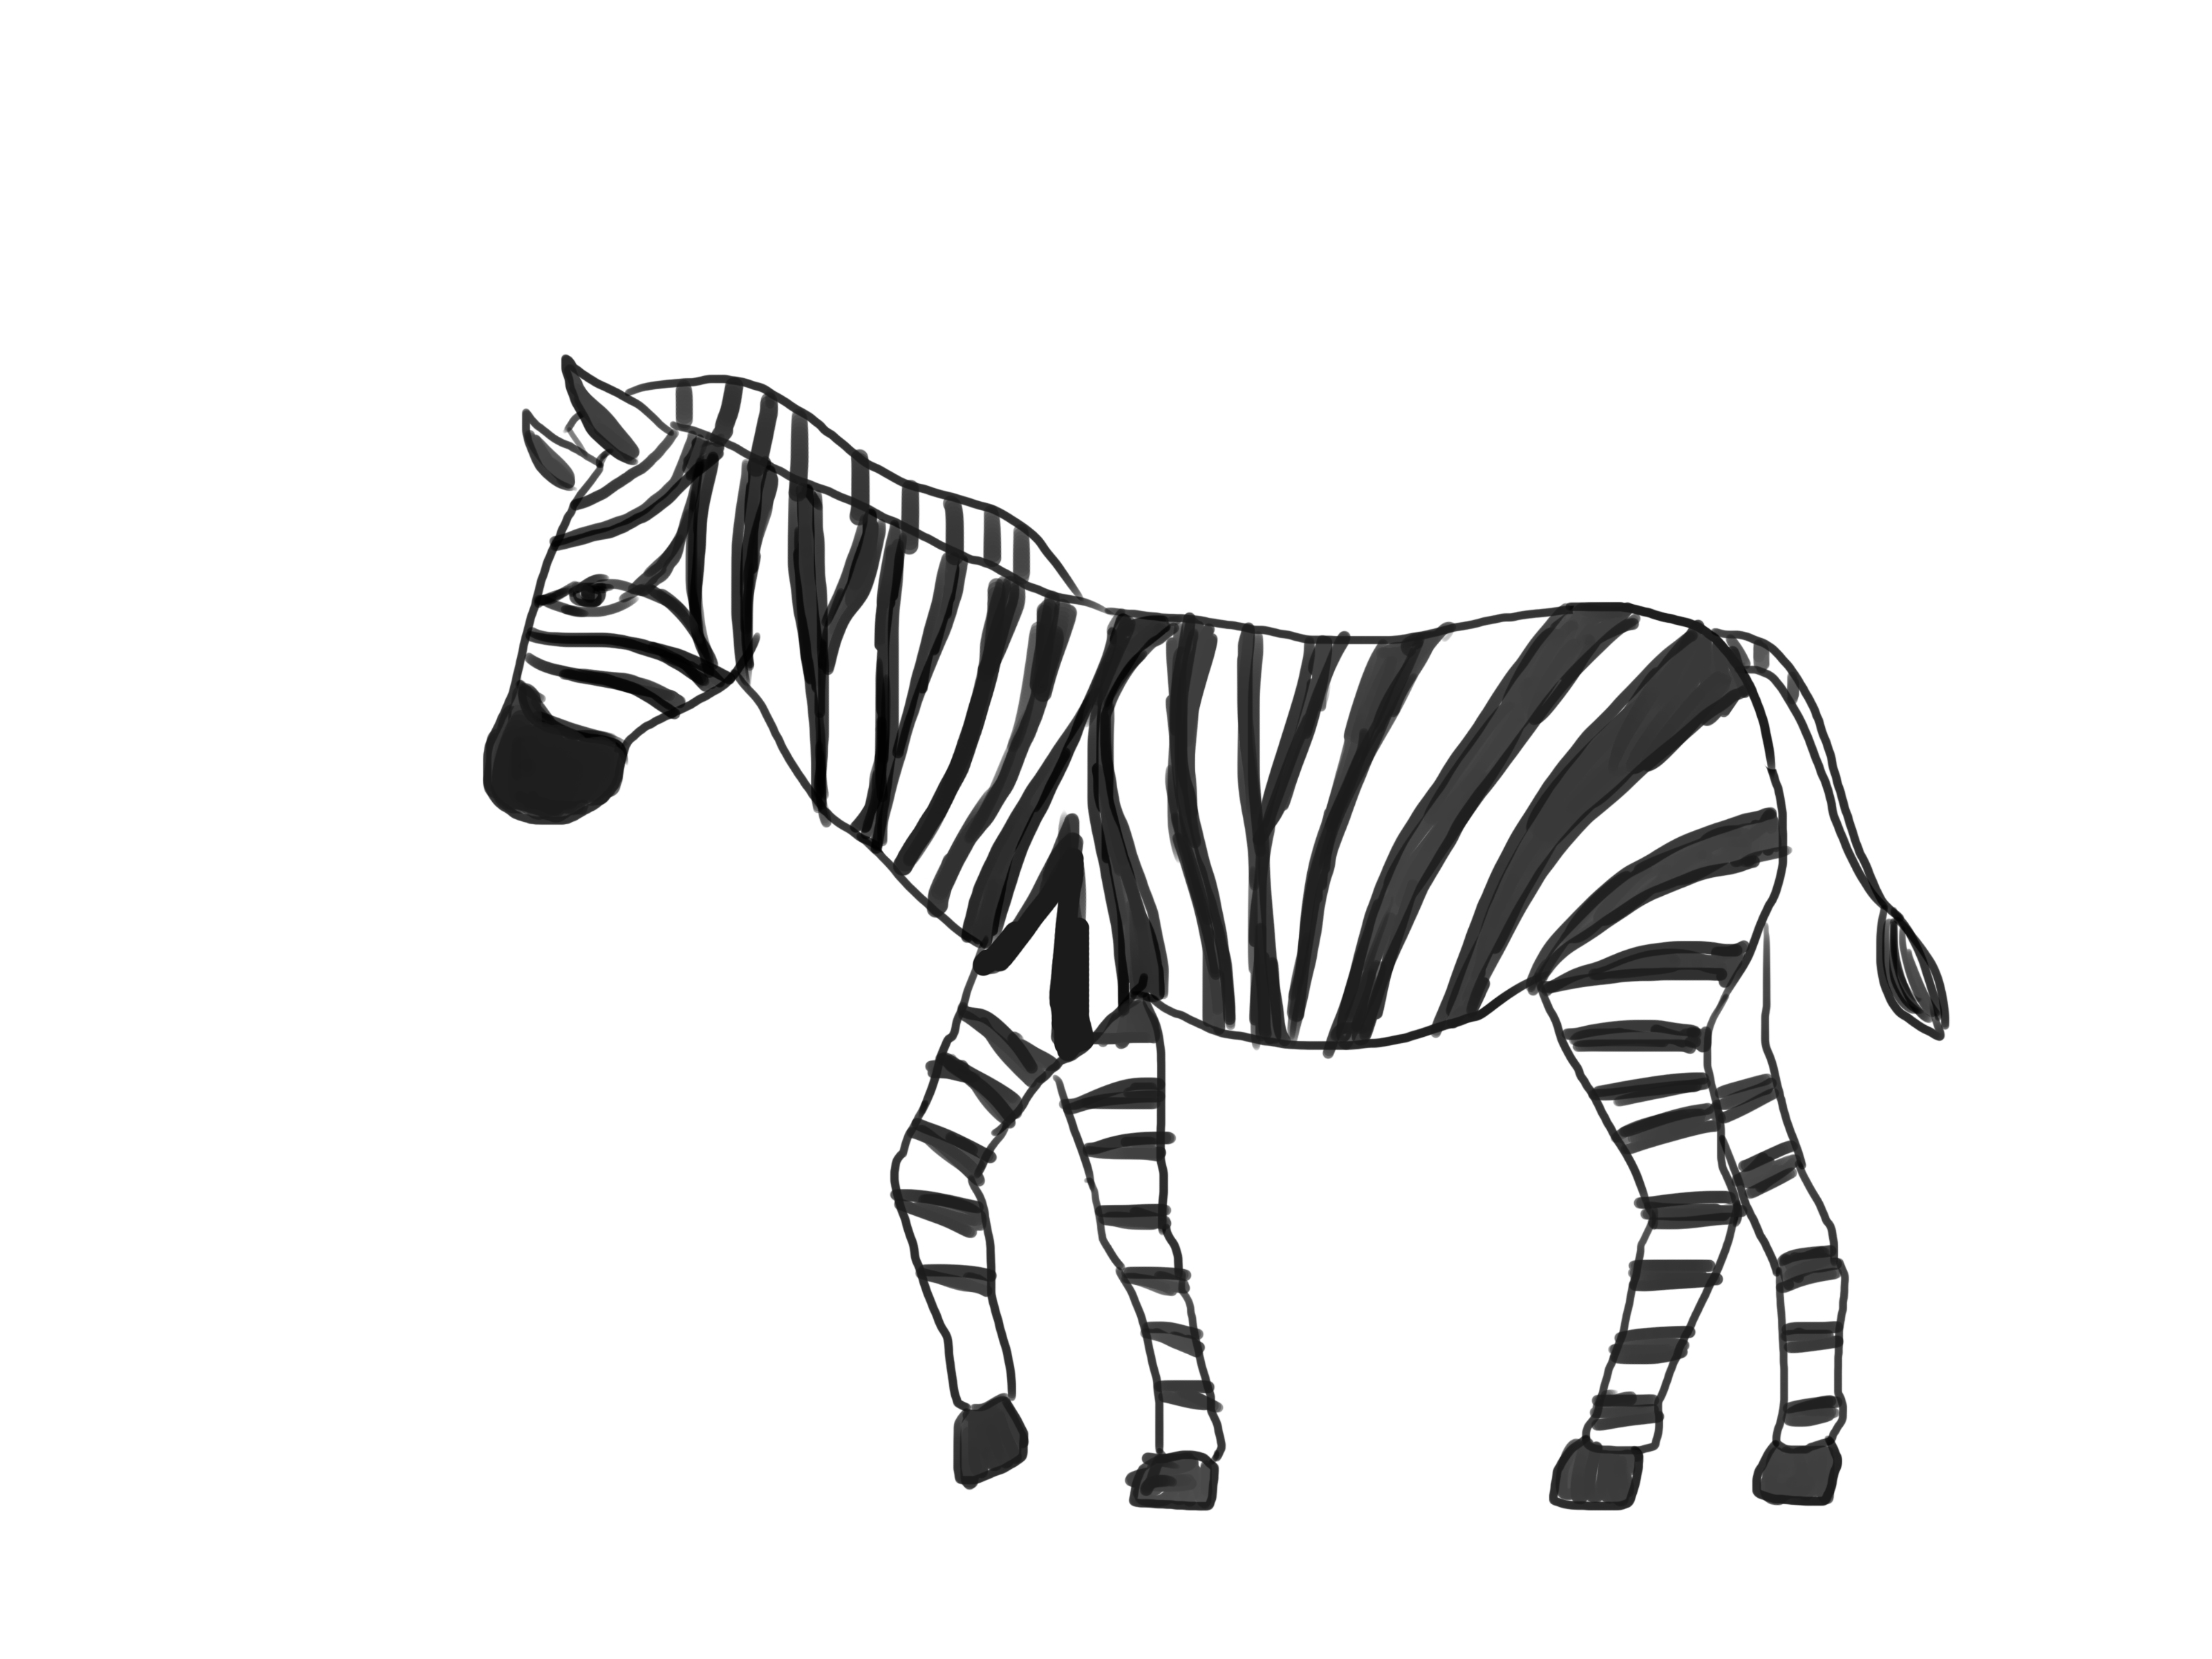 3200x2400 How To Draw A Zebra (With Pictures)